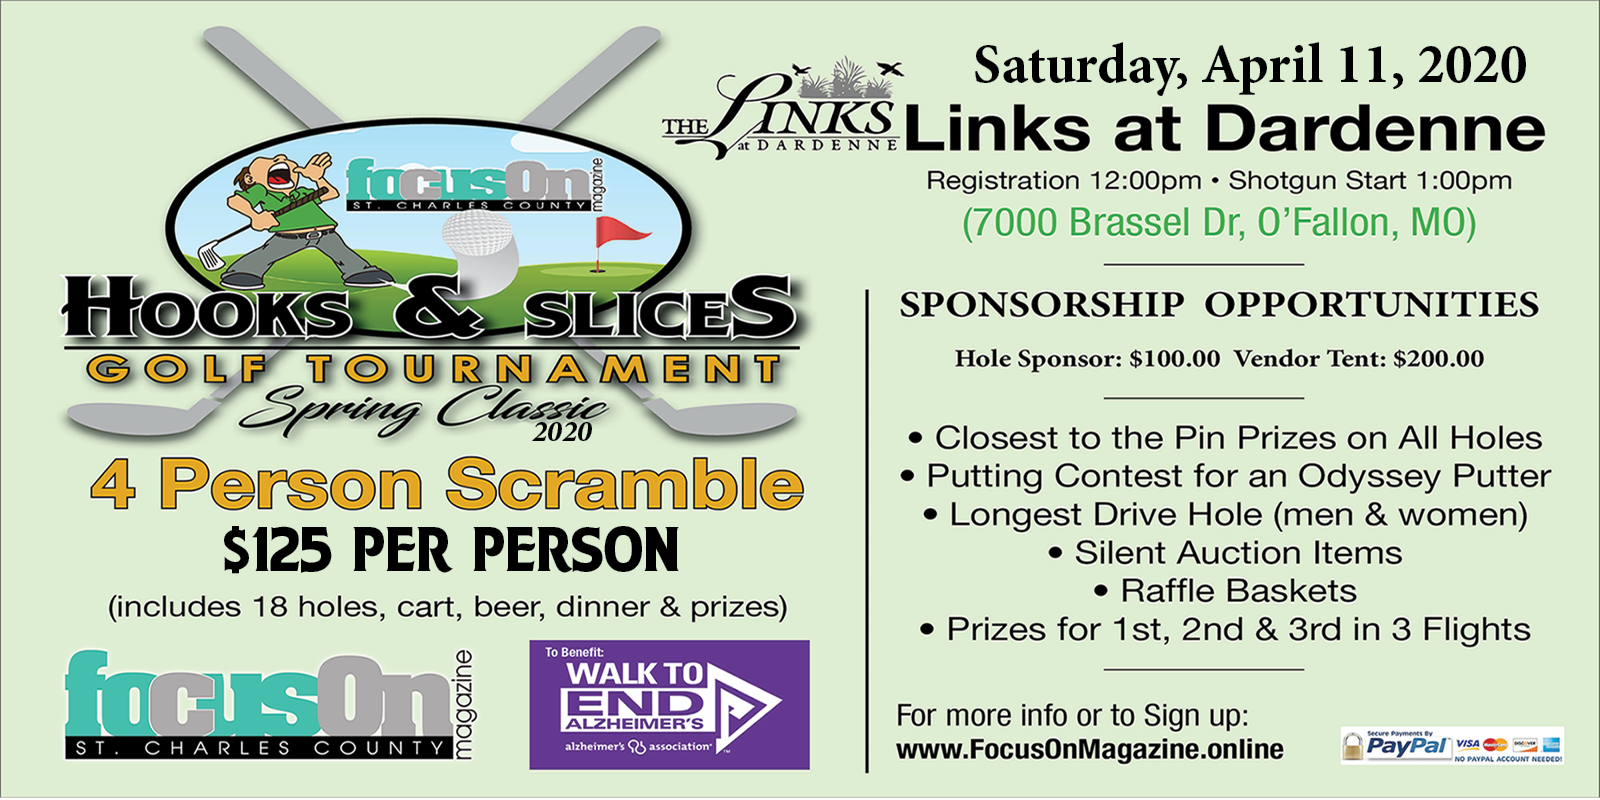 Hooks & Slices Golf Tournament